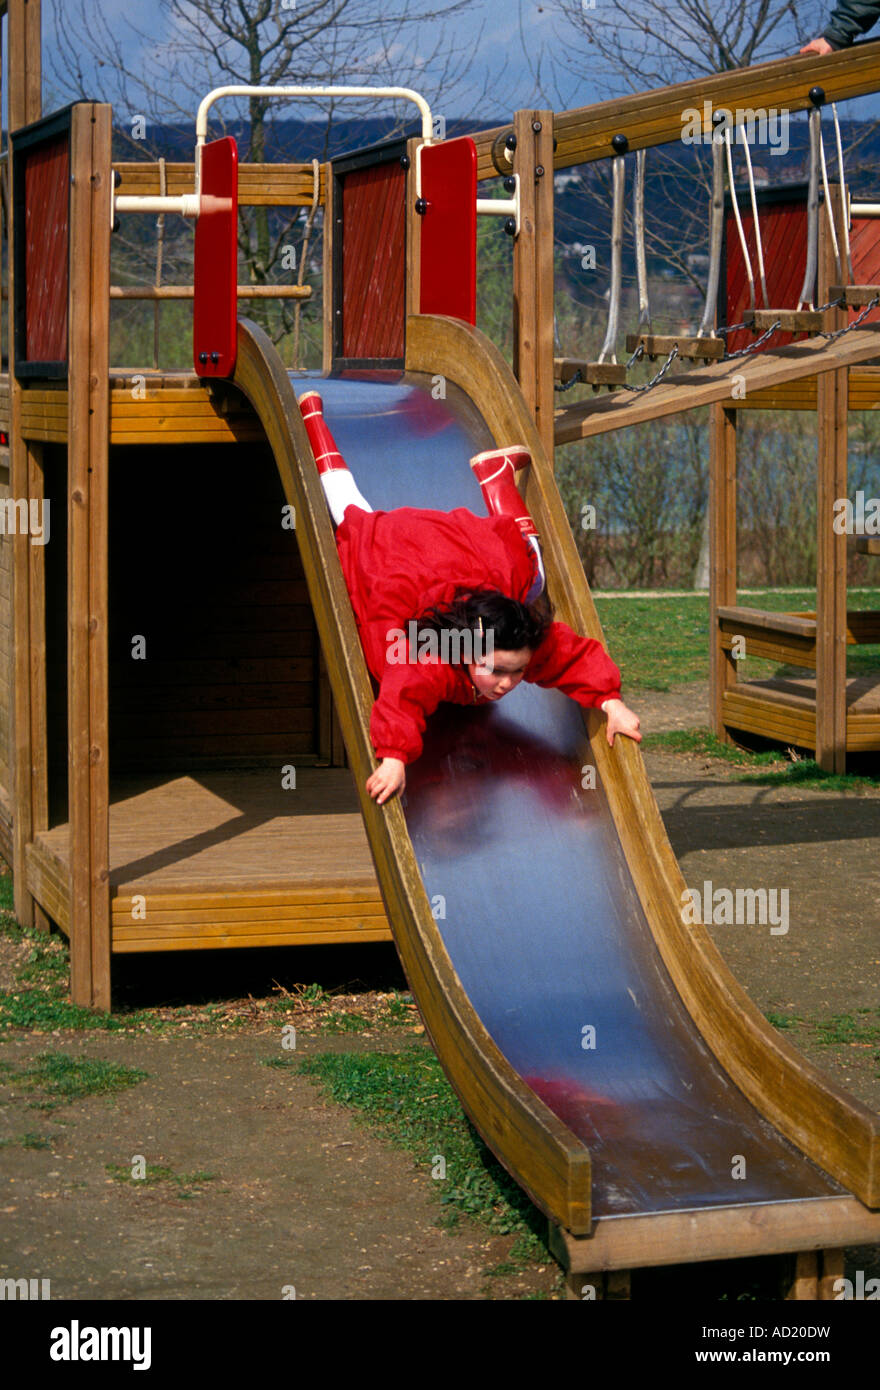 1, one, French girl, young girl, girl, child, at, play, playing, sliding pon, playground, Verneuil-sur-Seine, Ile - Stock Image